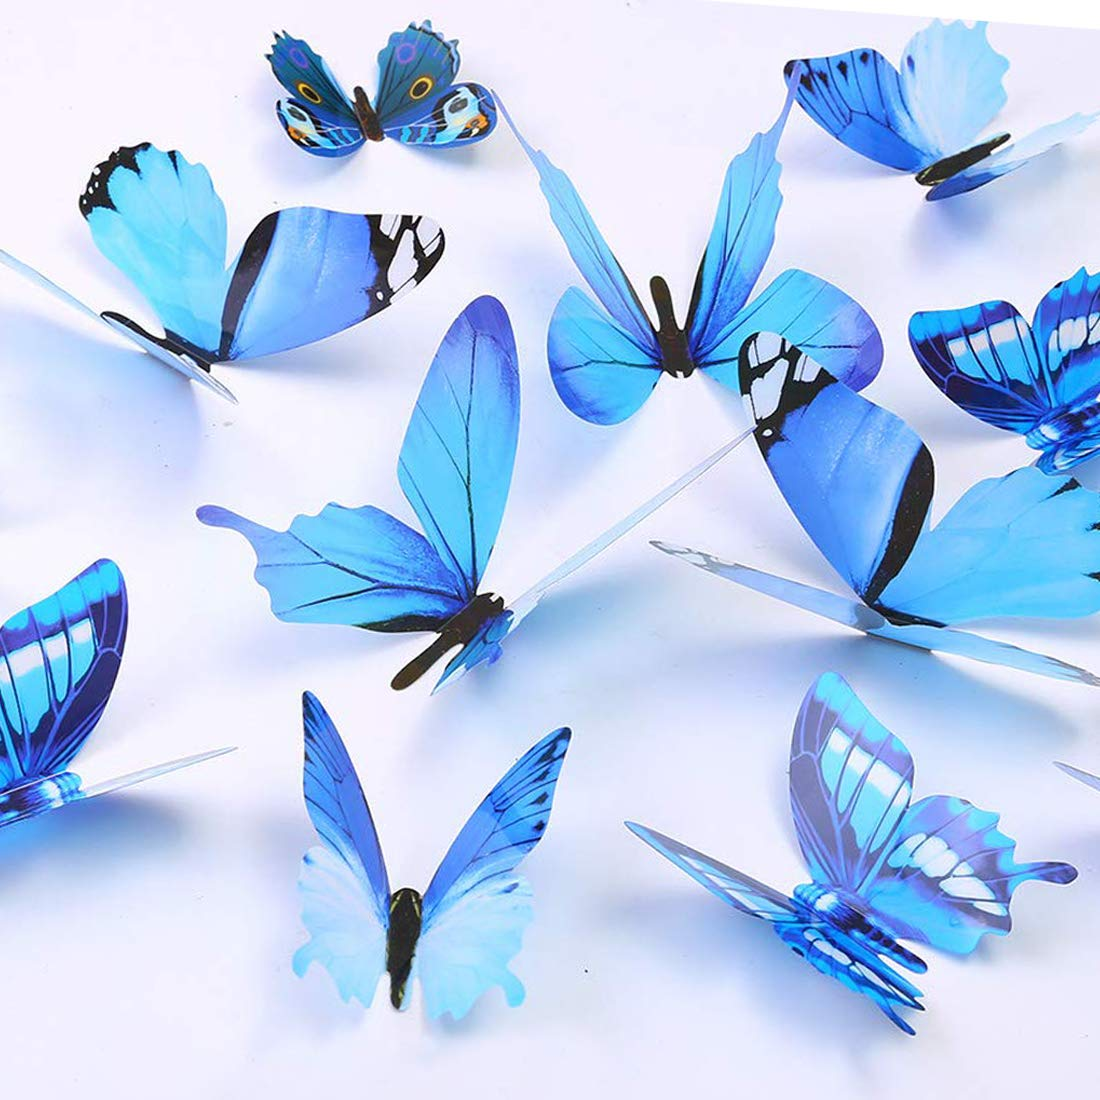 Butterfly Many popular brands Wall Decals 24 Pcs Stick Mural Removable Max 59% OFF 3D